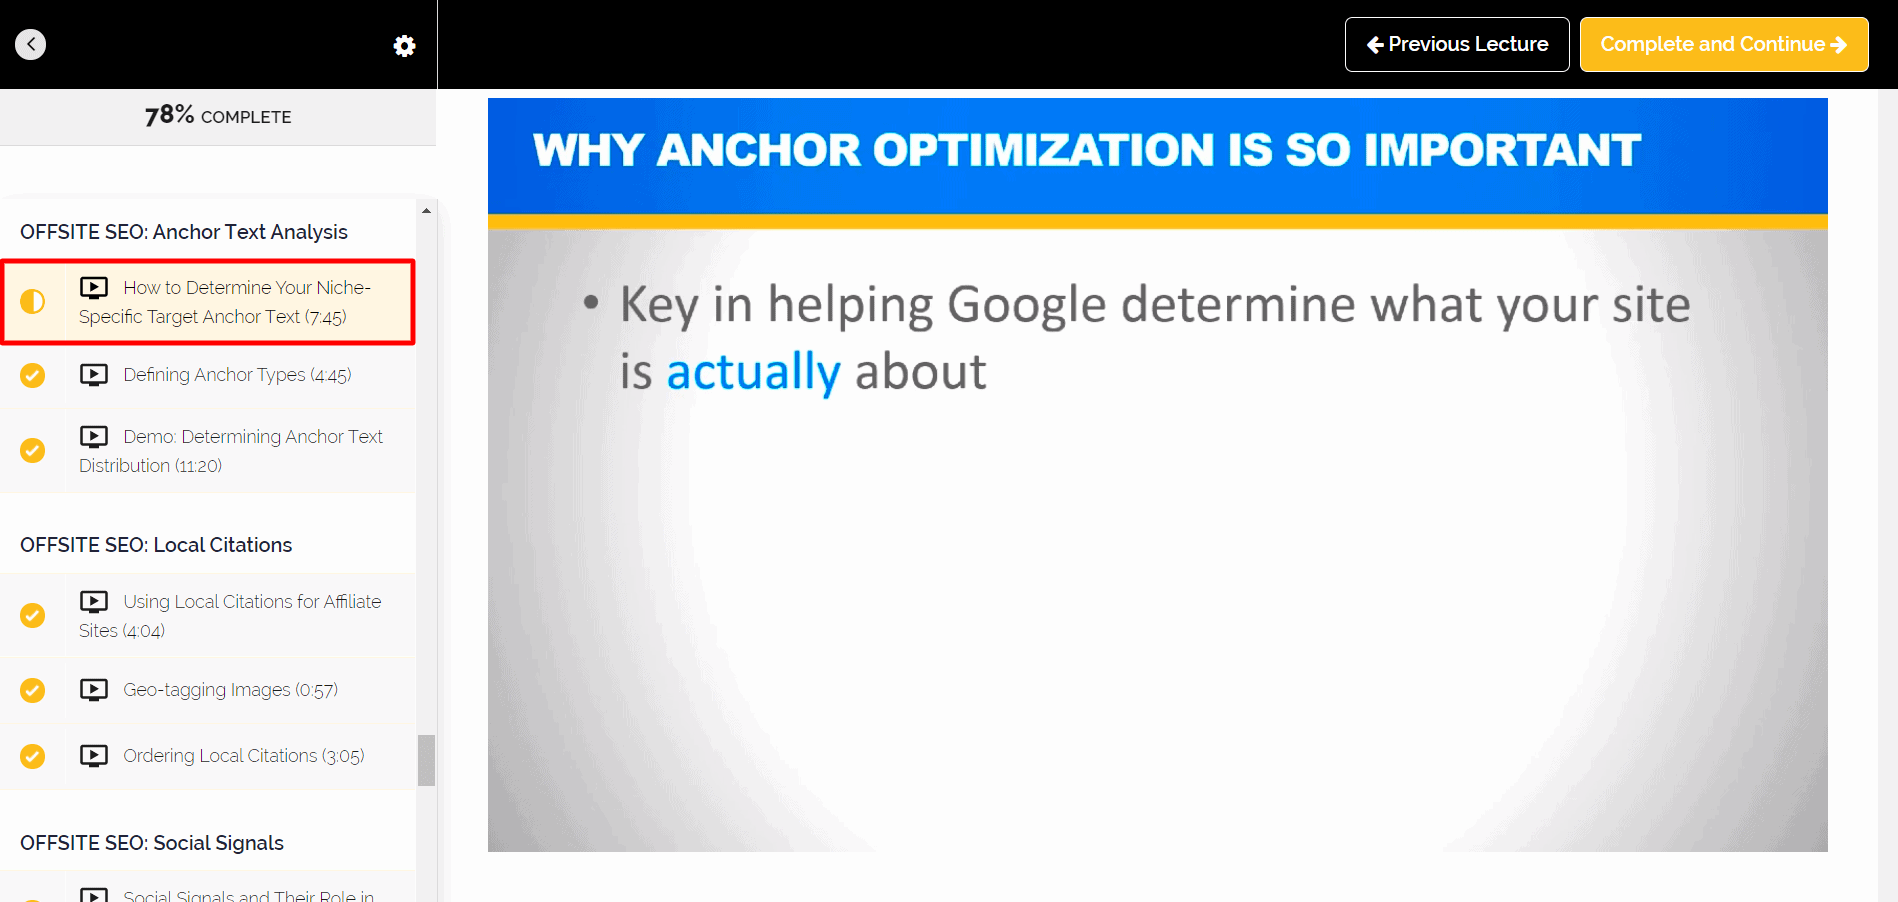 How to Determine Your Niche-Specific Target Anchor Text